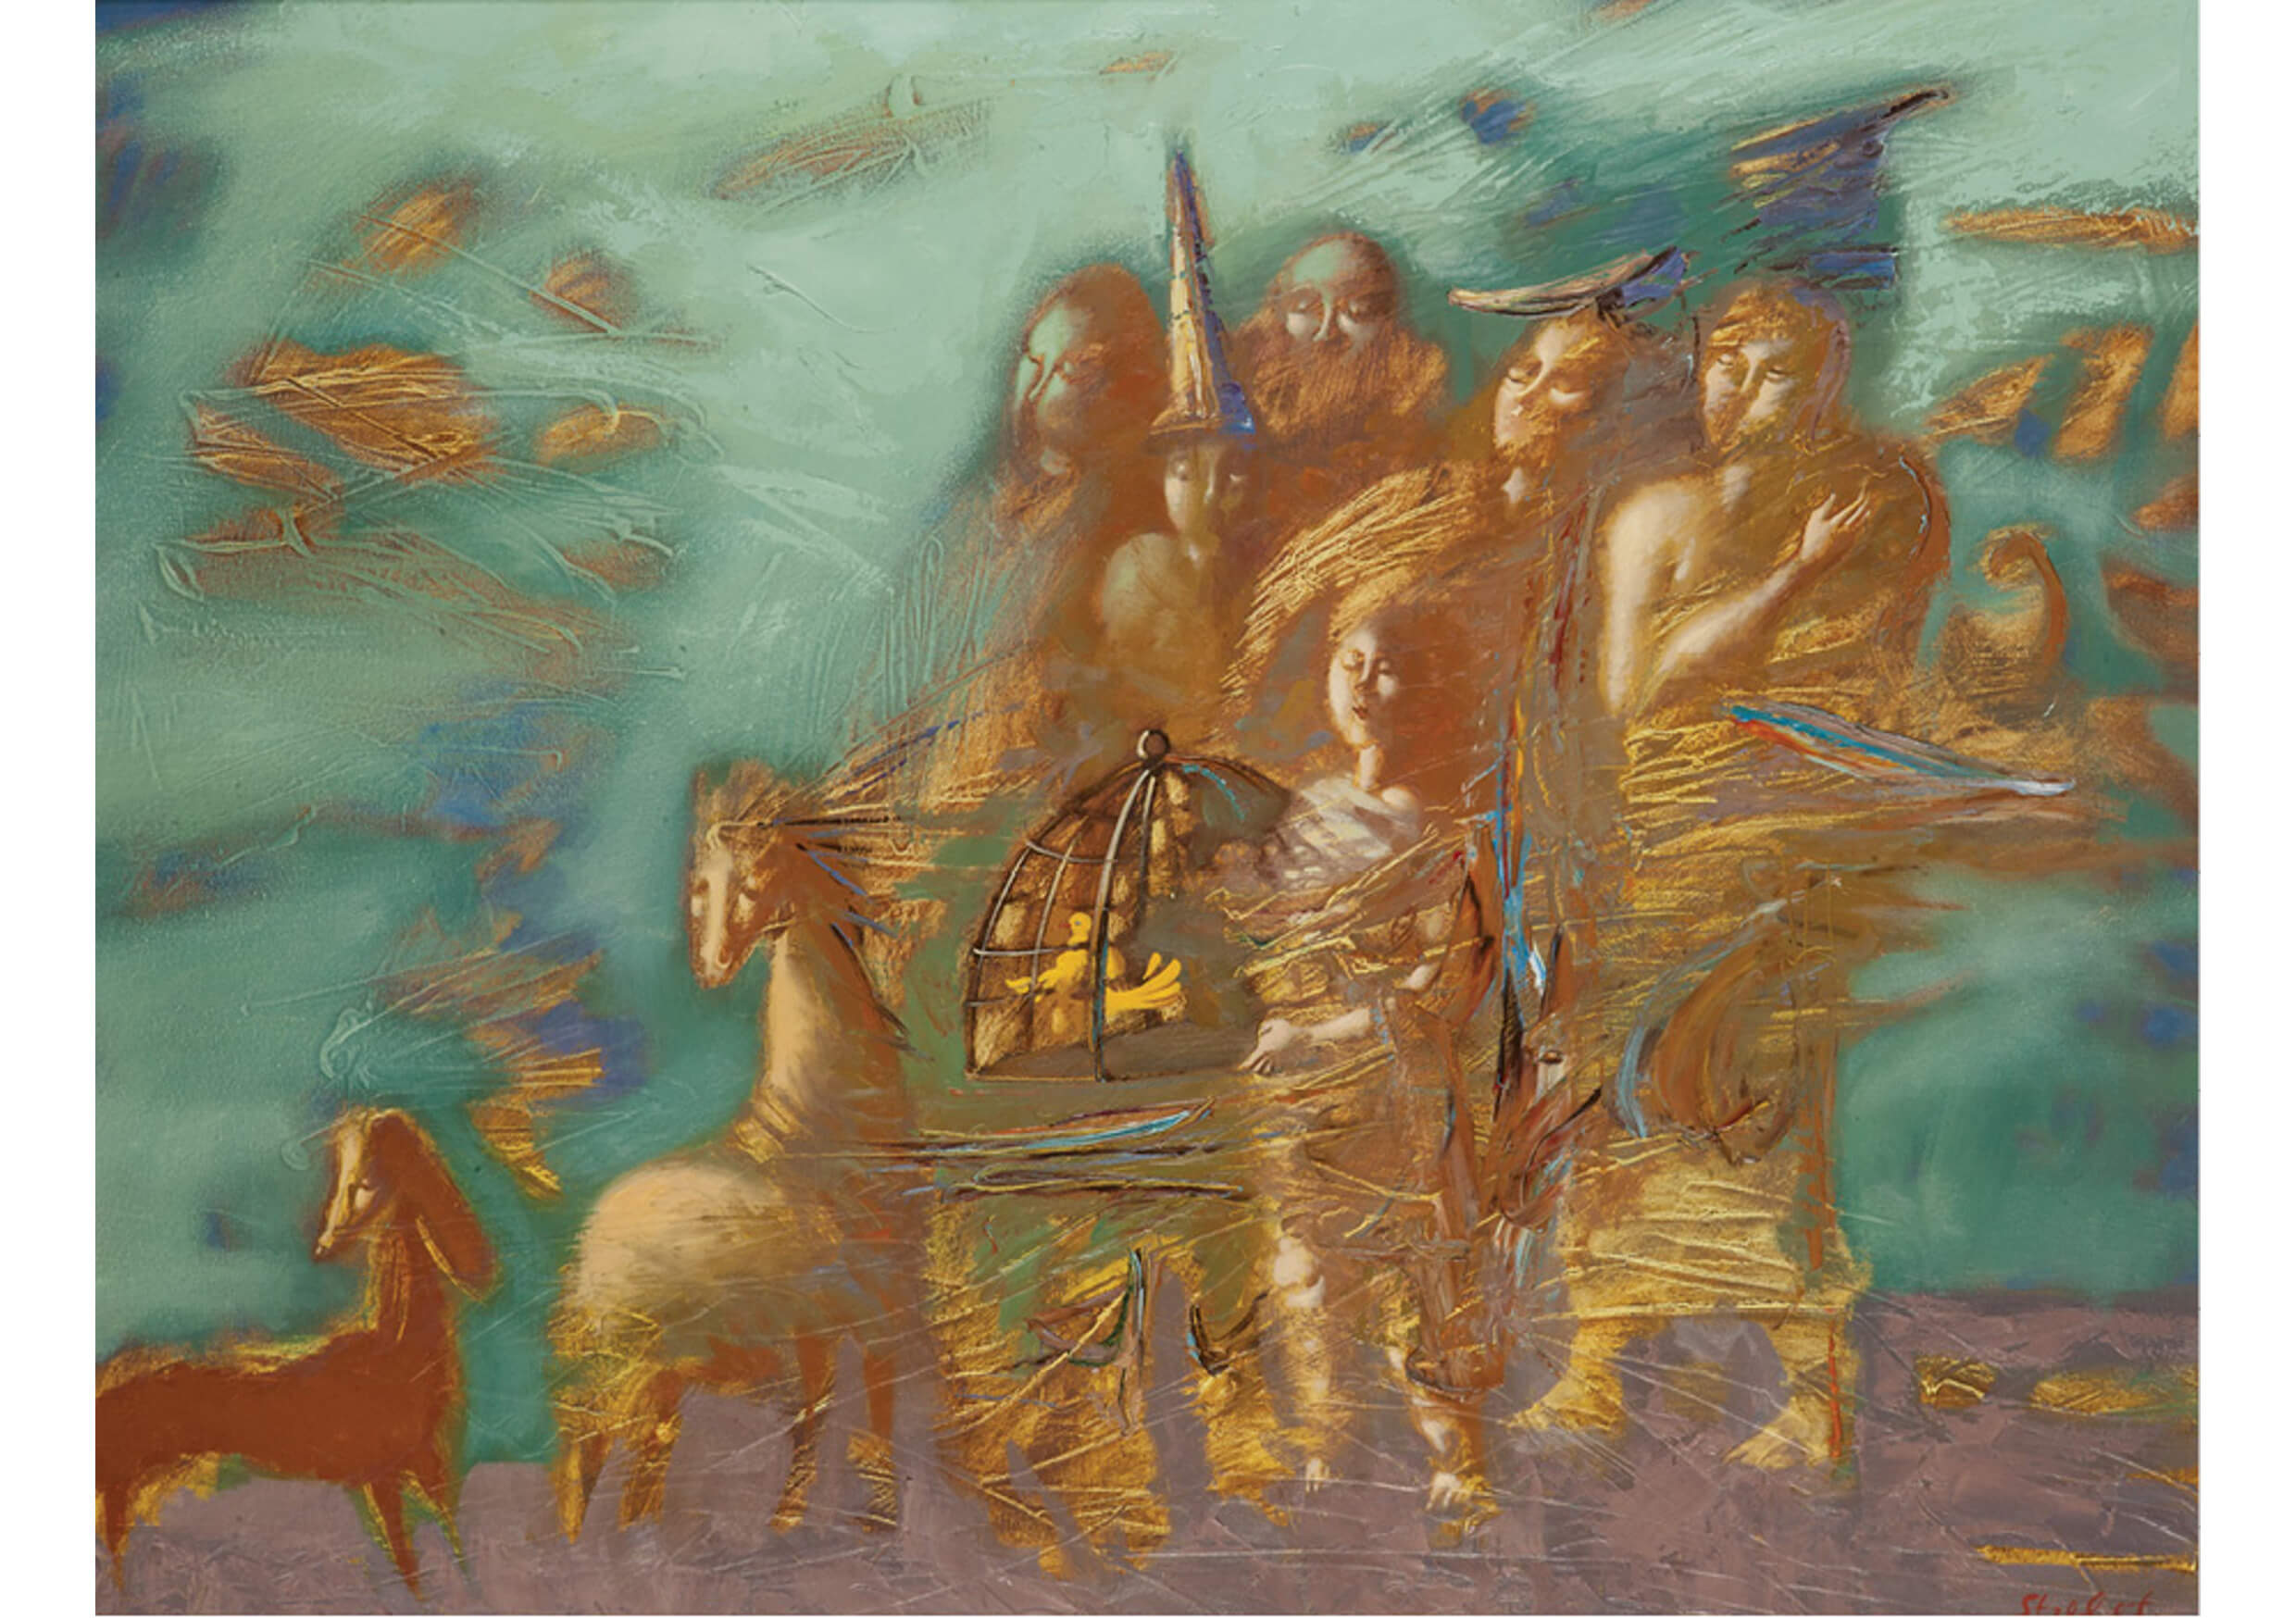 The riders, Mixed media on canvas, 70 x 90 cm